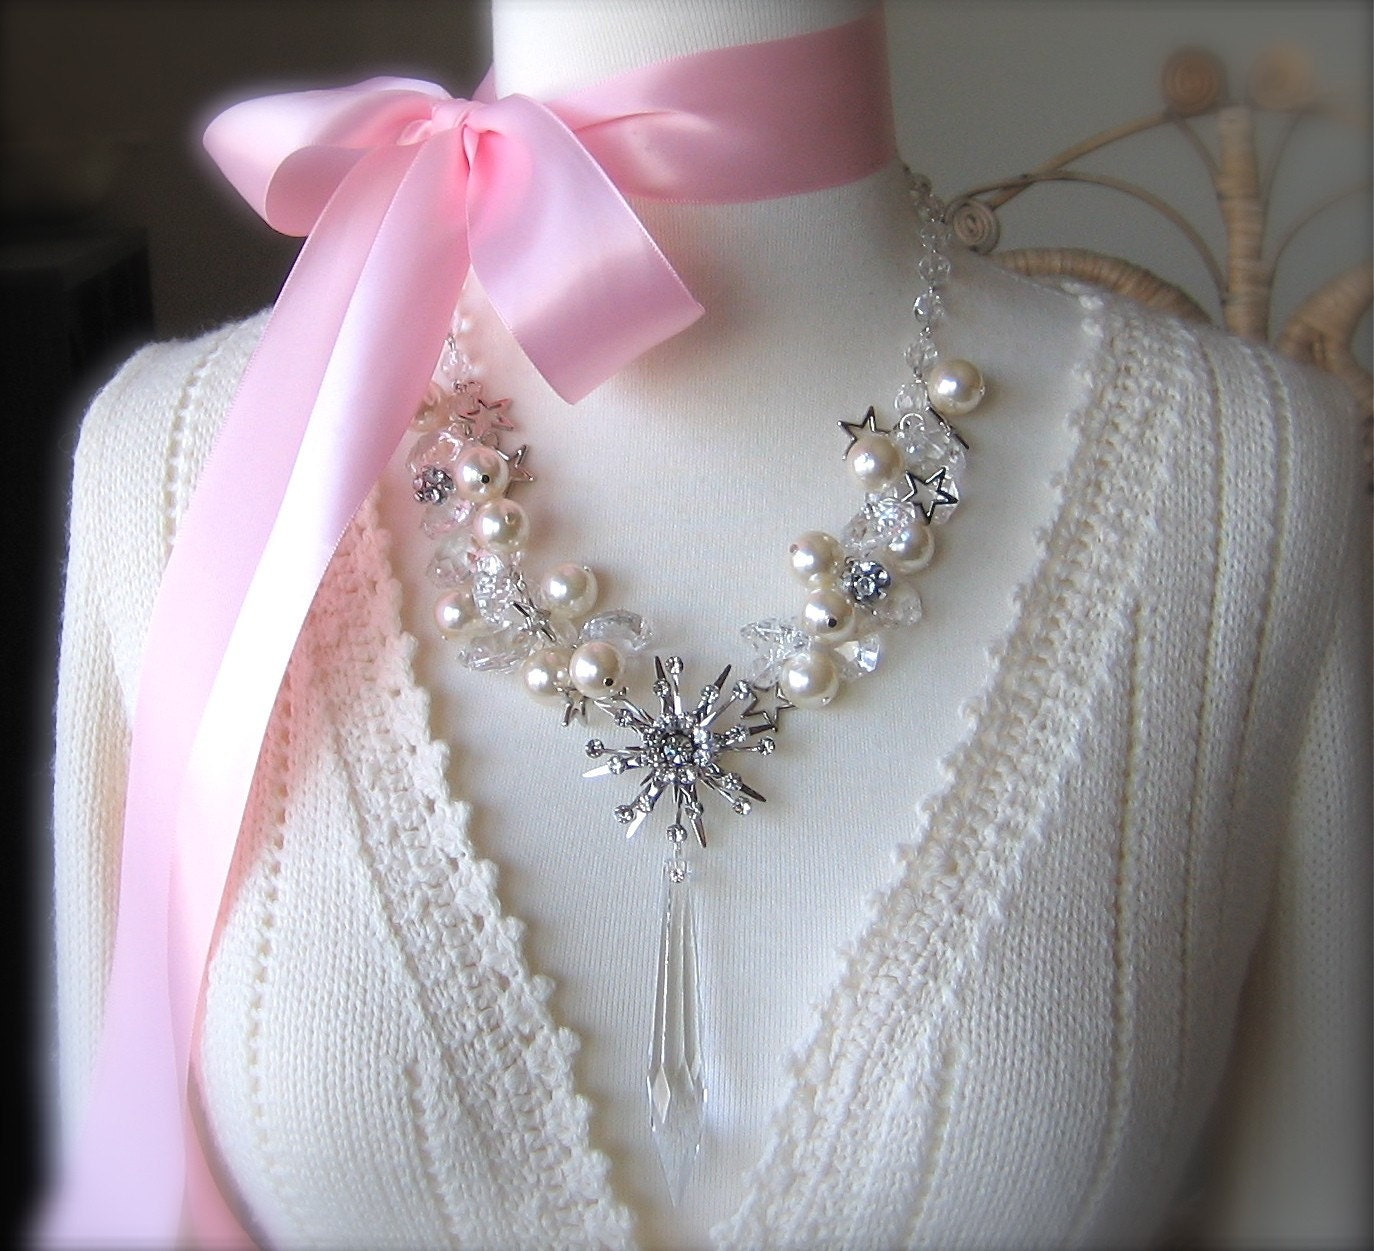 Jack Frost Necklace - A Cool Compilation Of Frosty Vintage Rhinestones And Crystal Ice - Chilly Winter White Pearls And Sparkling Snowflakes - BRRRRR -Baby It's Cold Outside -A Fantasy Statement Piece To Melt Her Heart